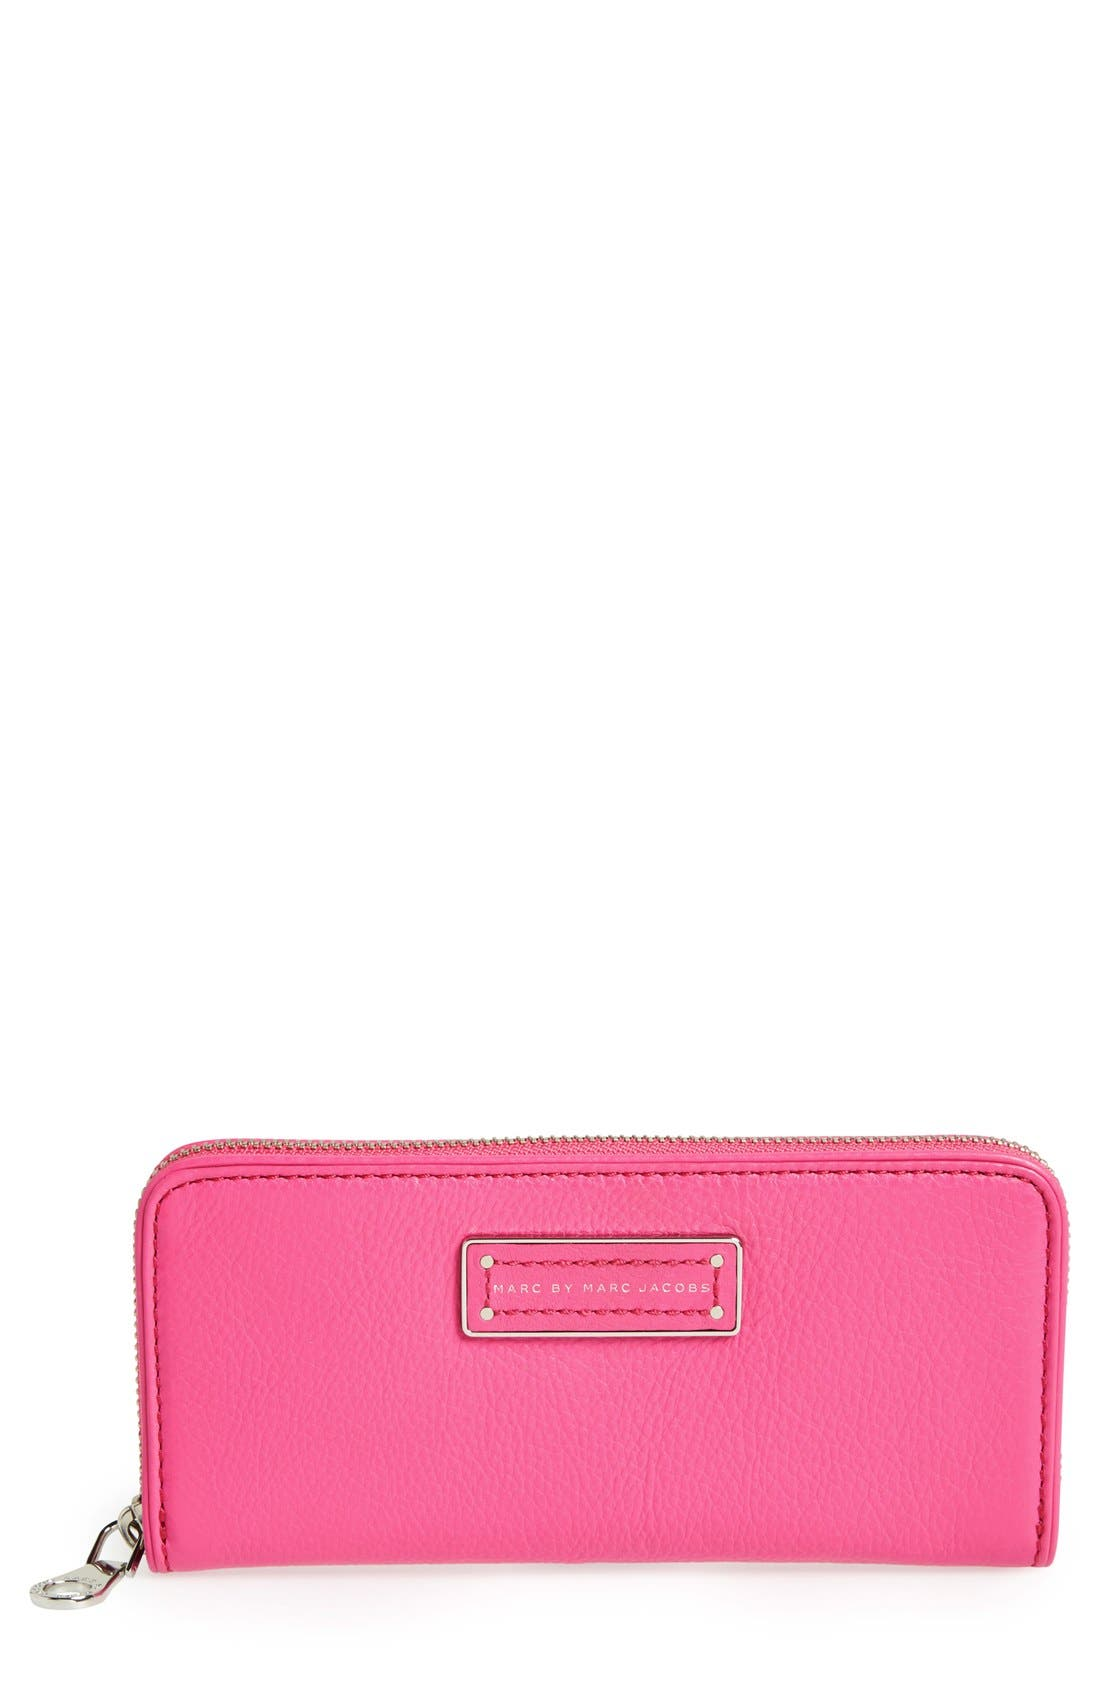 MARC JACOBS,                             MARC BY MARC JACOBS 'Too Hot To Handle - Slim' Zip Around Wallet,                             Main thumbnail 1, color,                             500